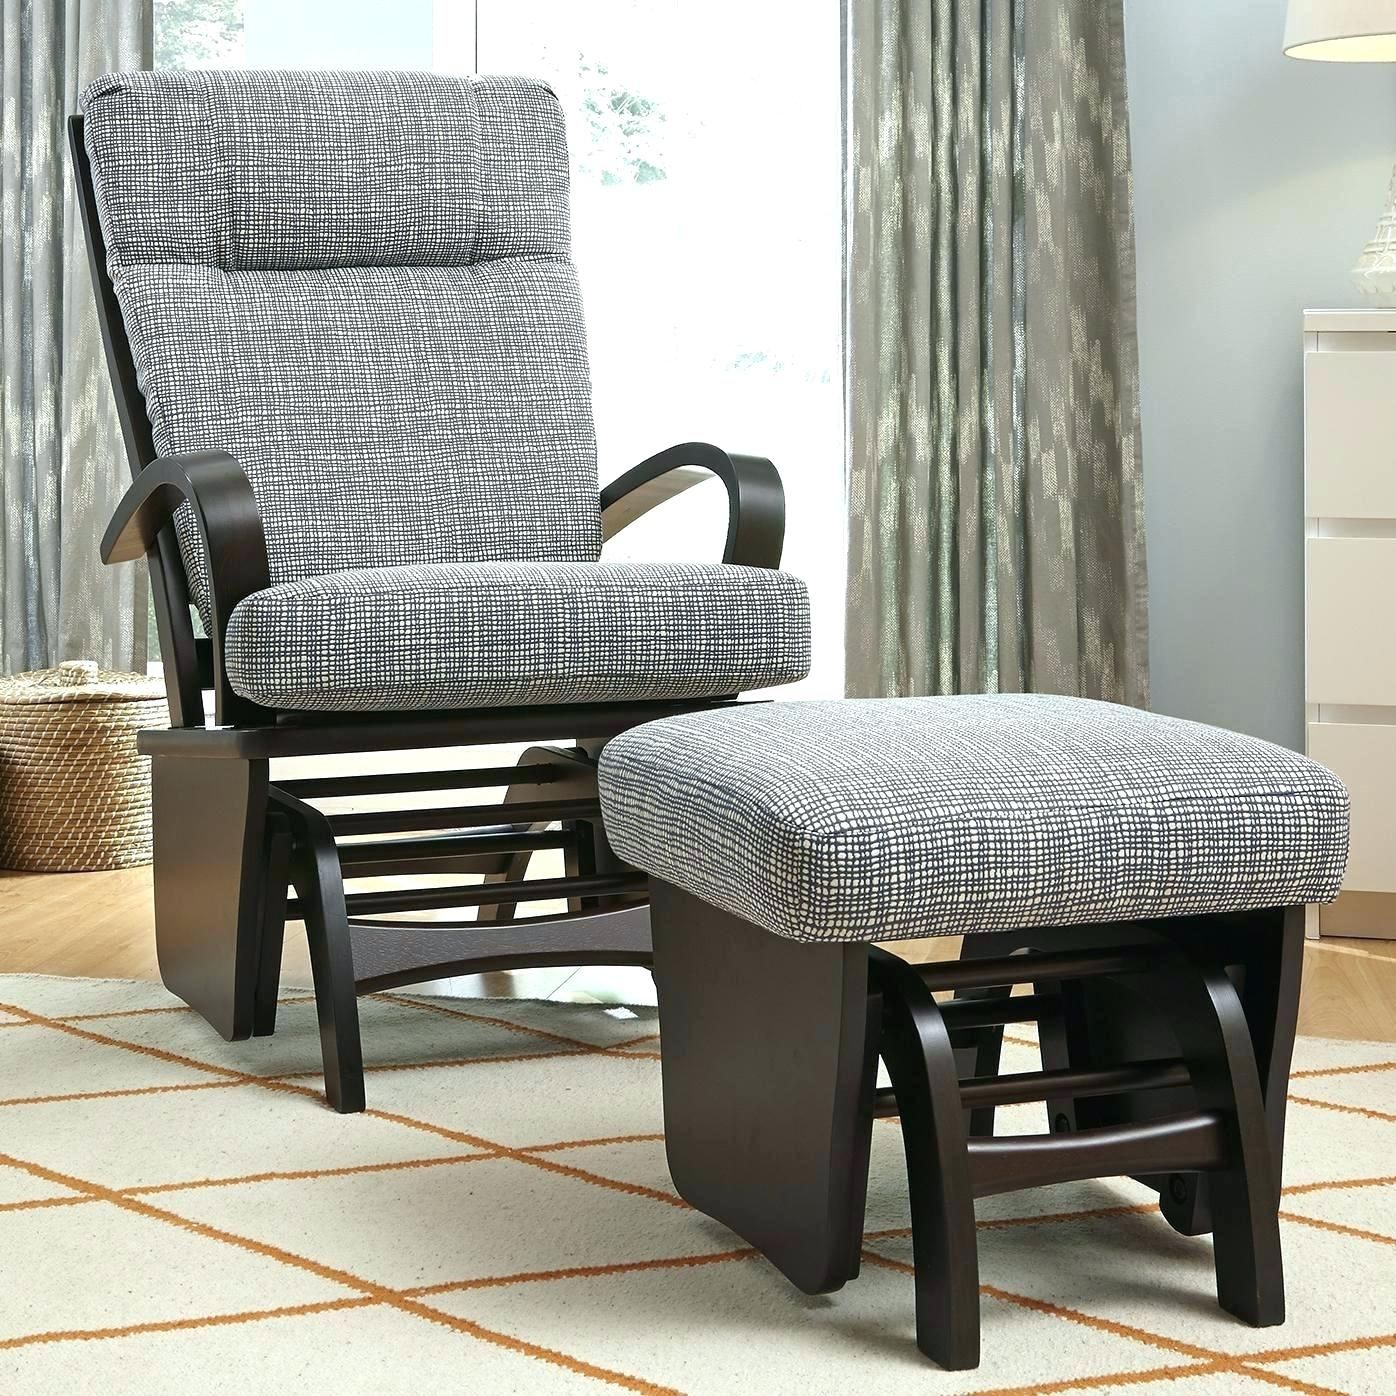 70 Cushion for Glider Rocking Chair Best Master Furniture Check